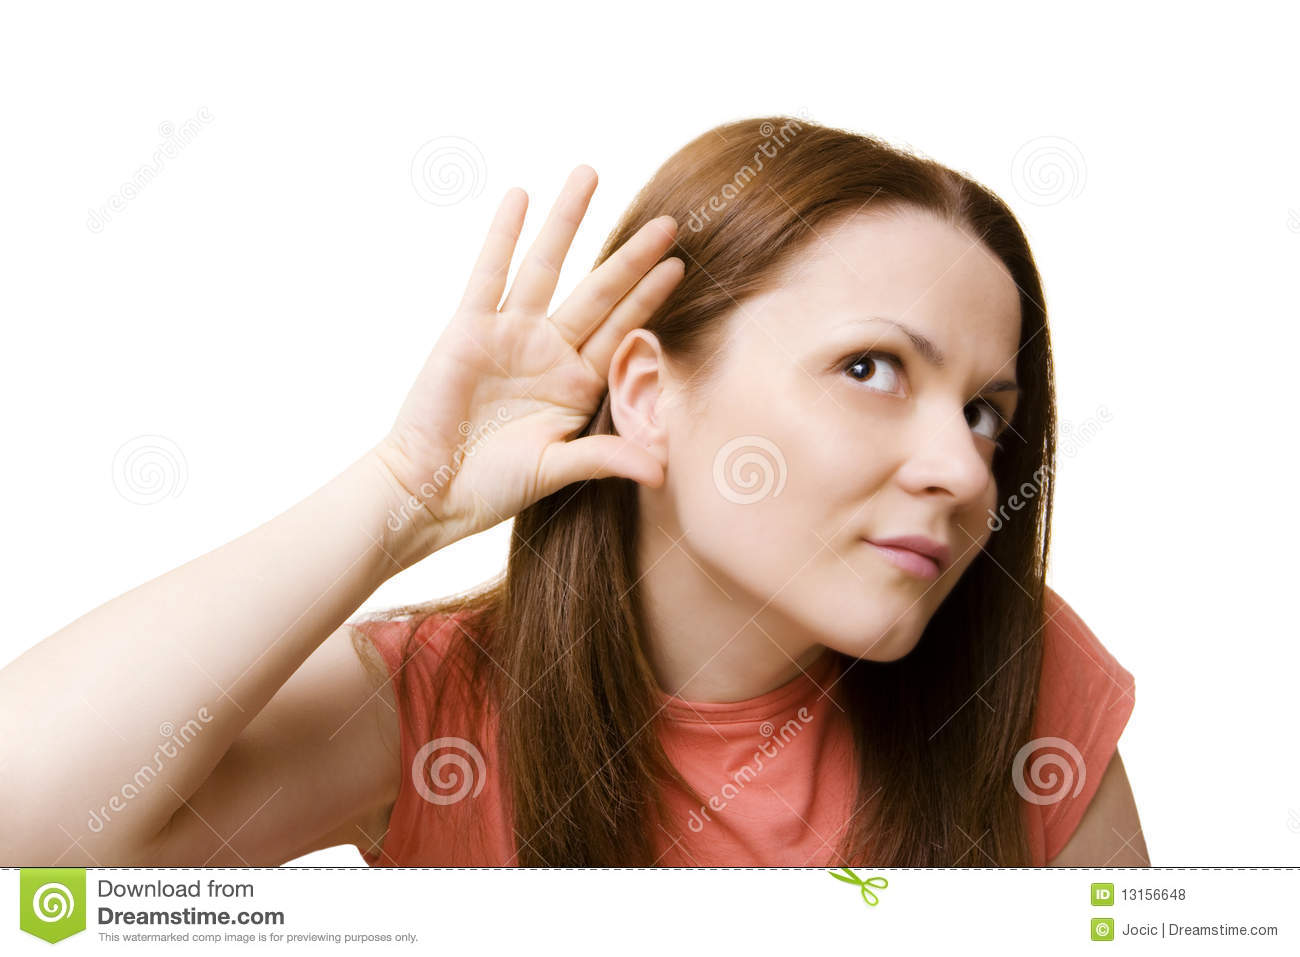 Can T Hear You Royalty Free Stock Photos Image 13156648